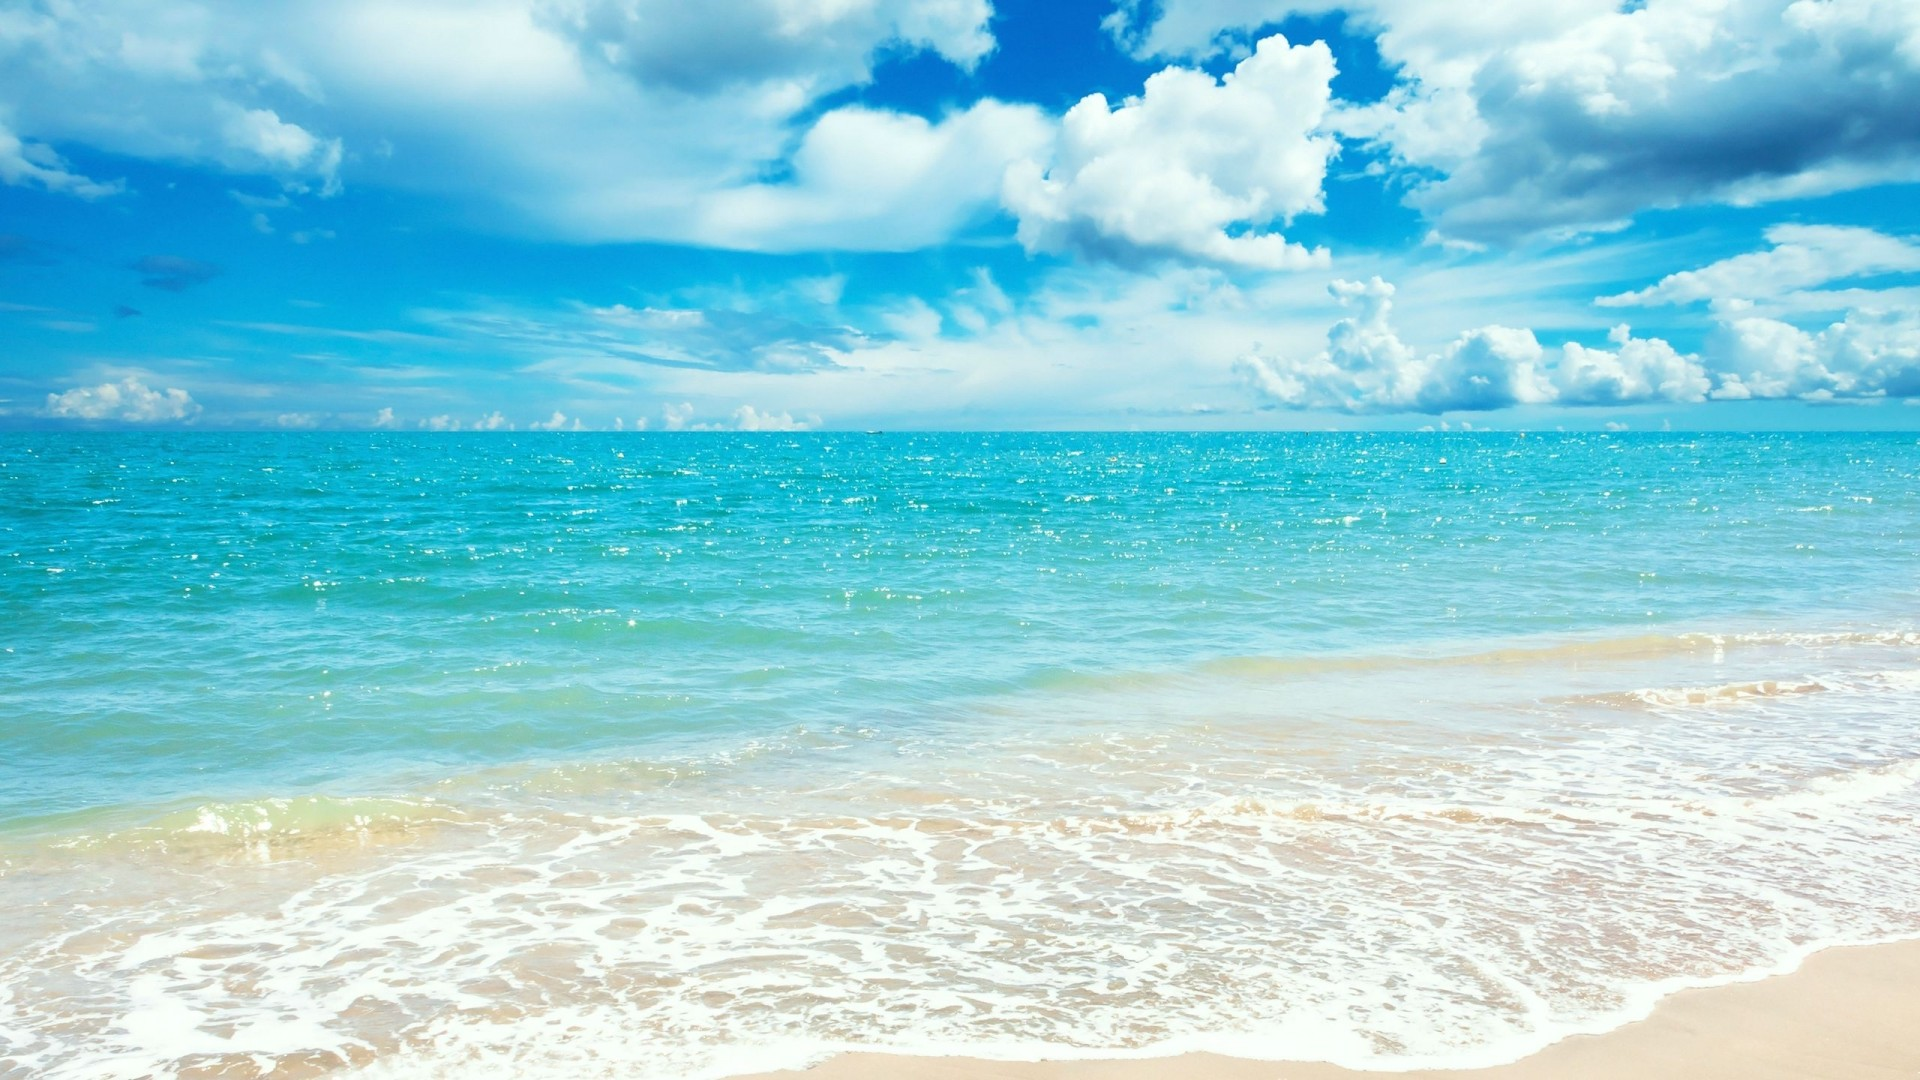 Summer Beach   Wallpaper High Definition High Quality Widescreen 1920x1080